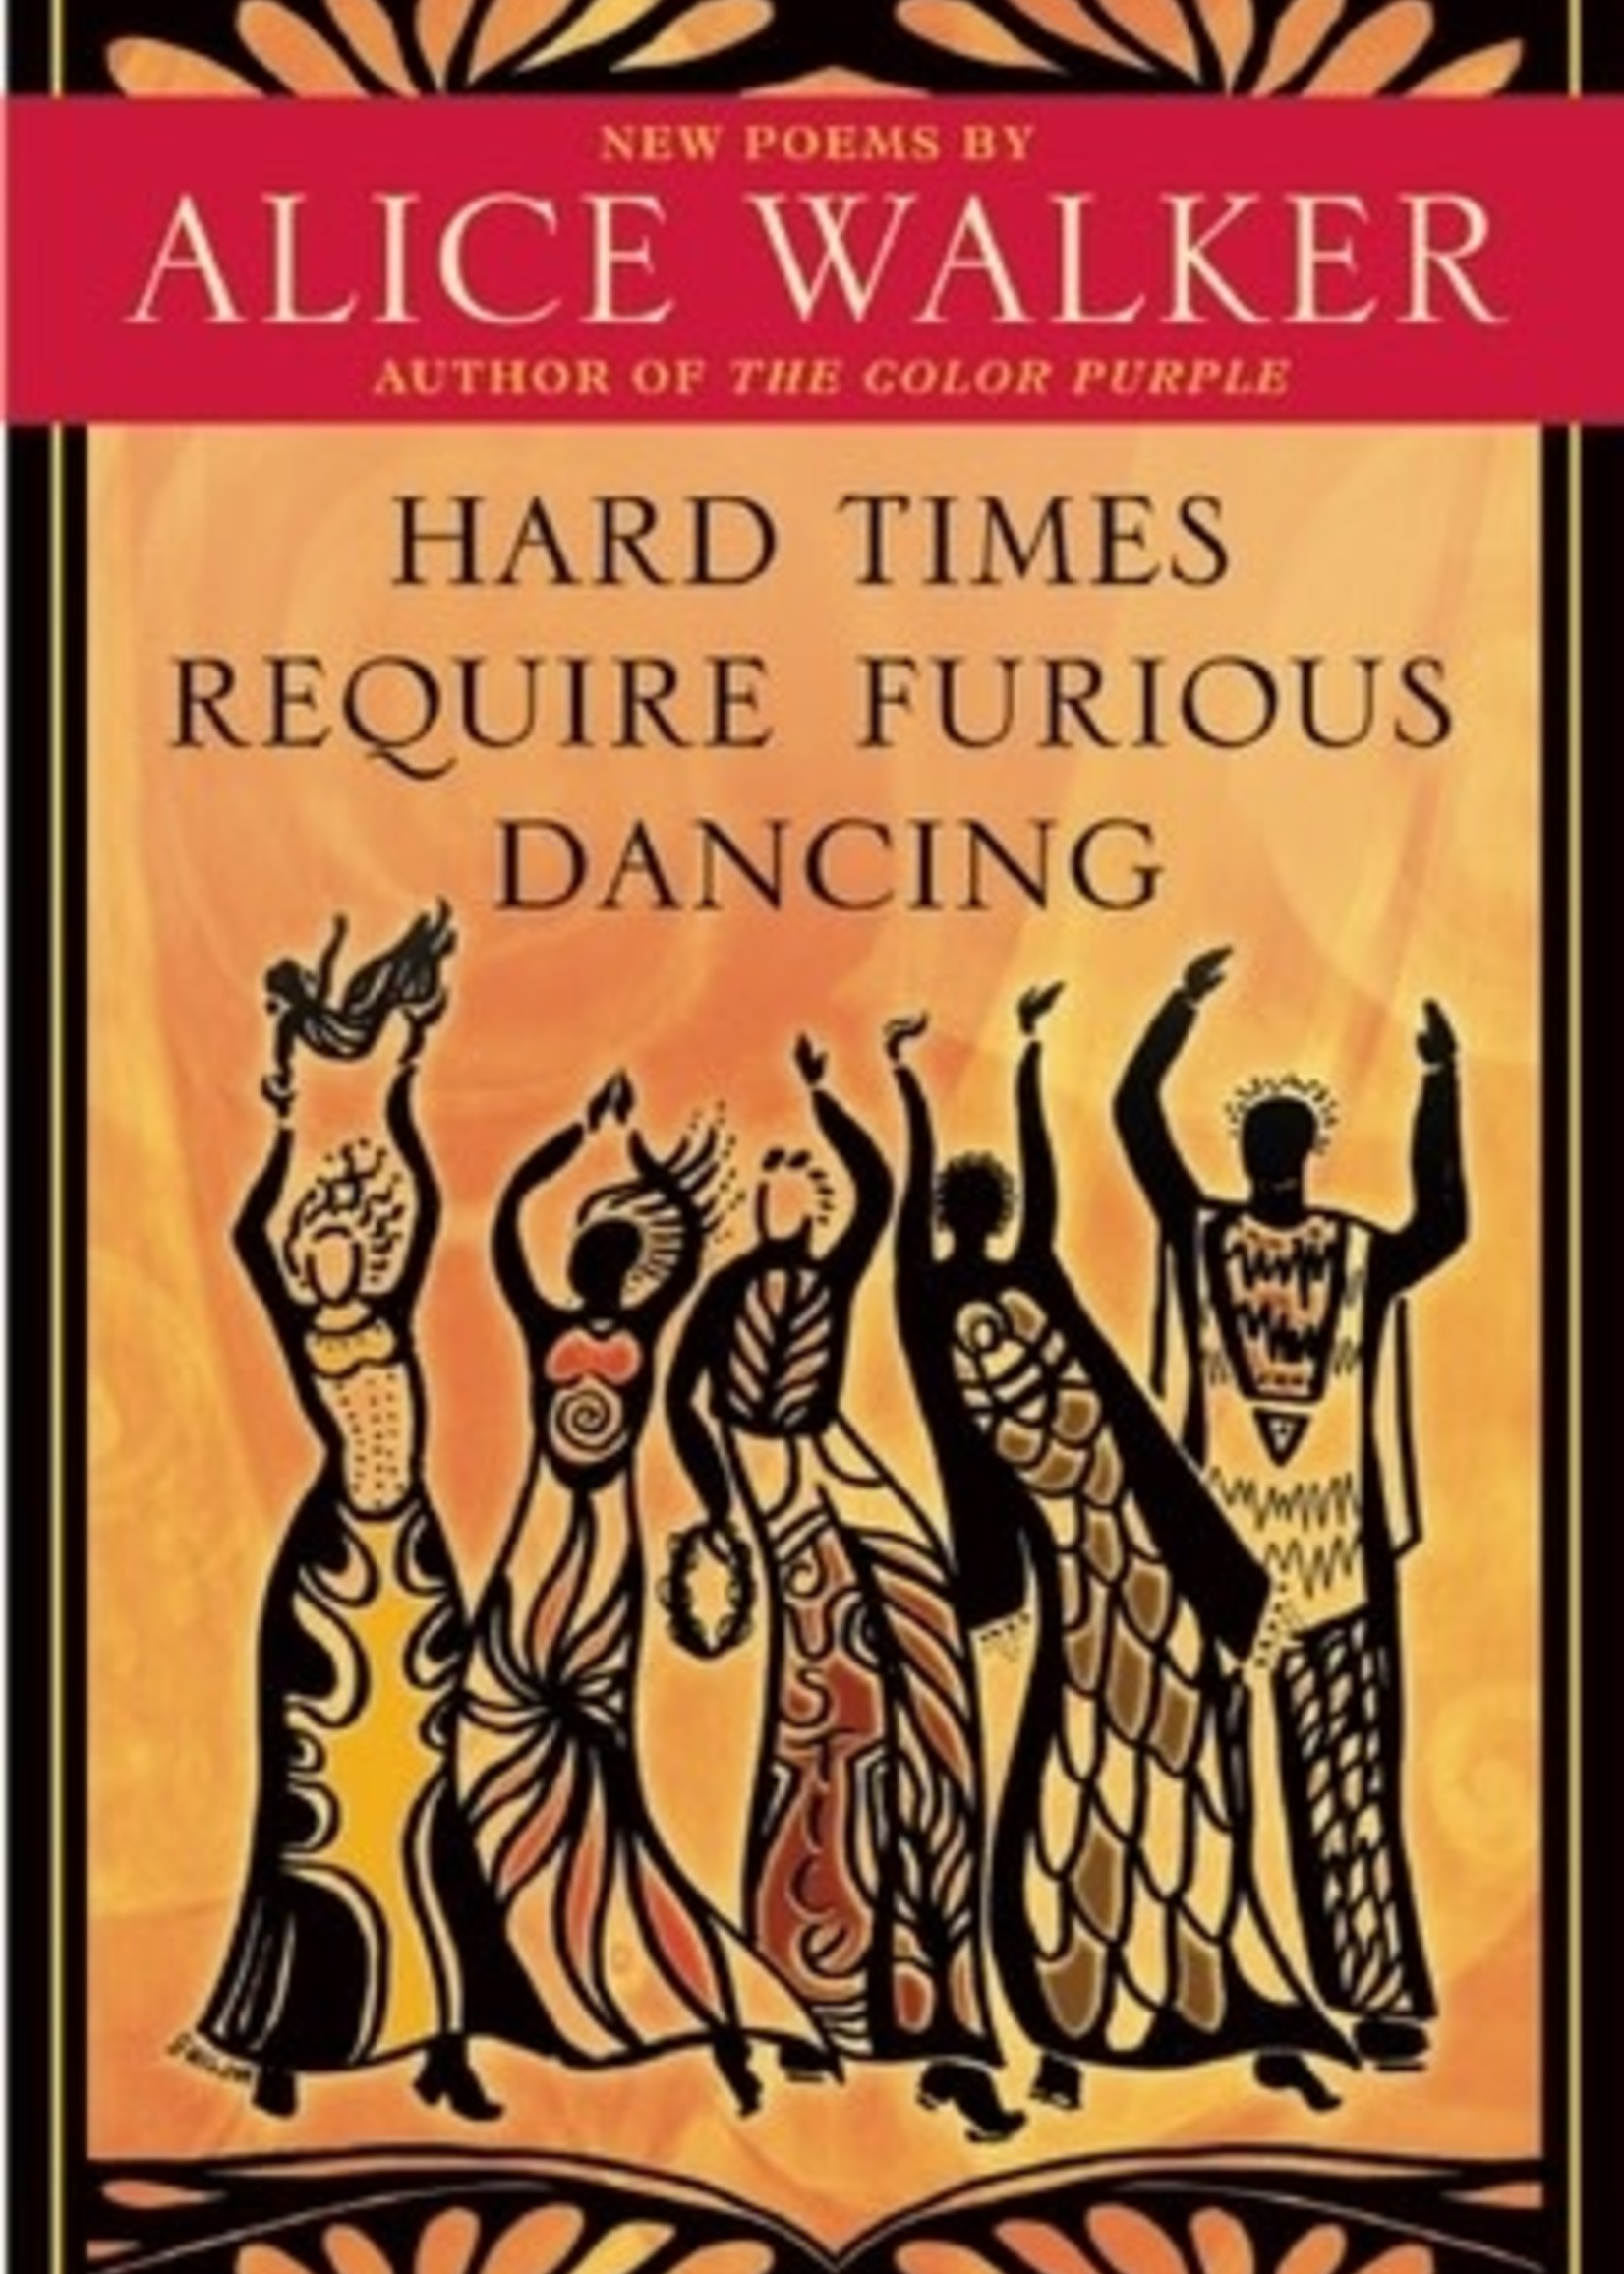 Hard Times Require Furious Dancing : New Poems by Alice Walker